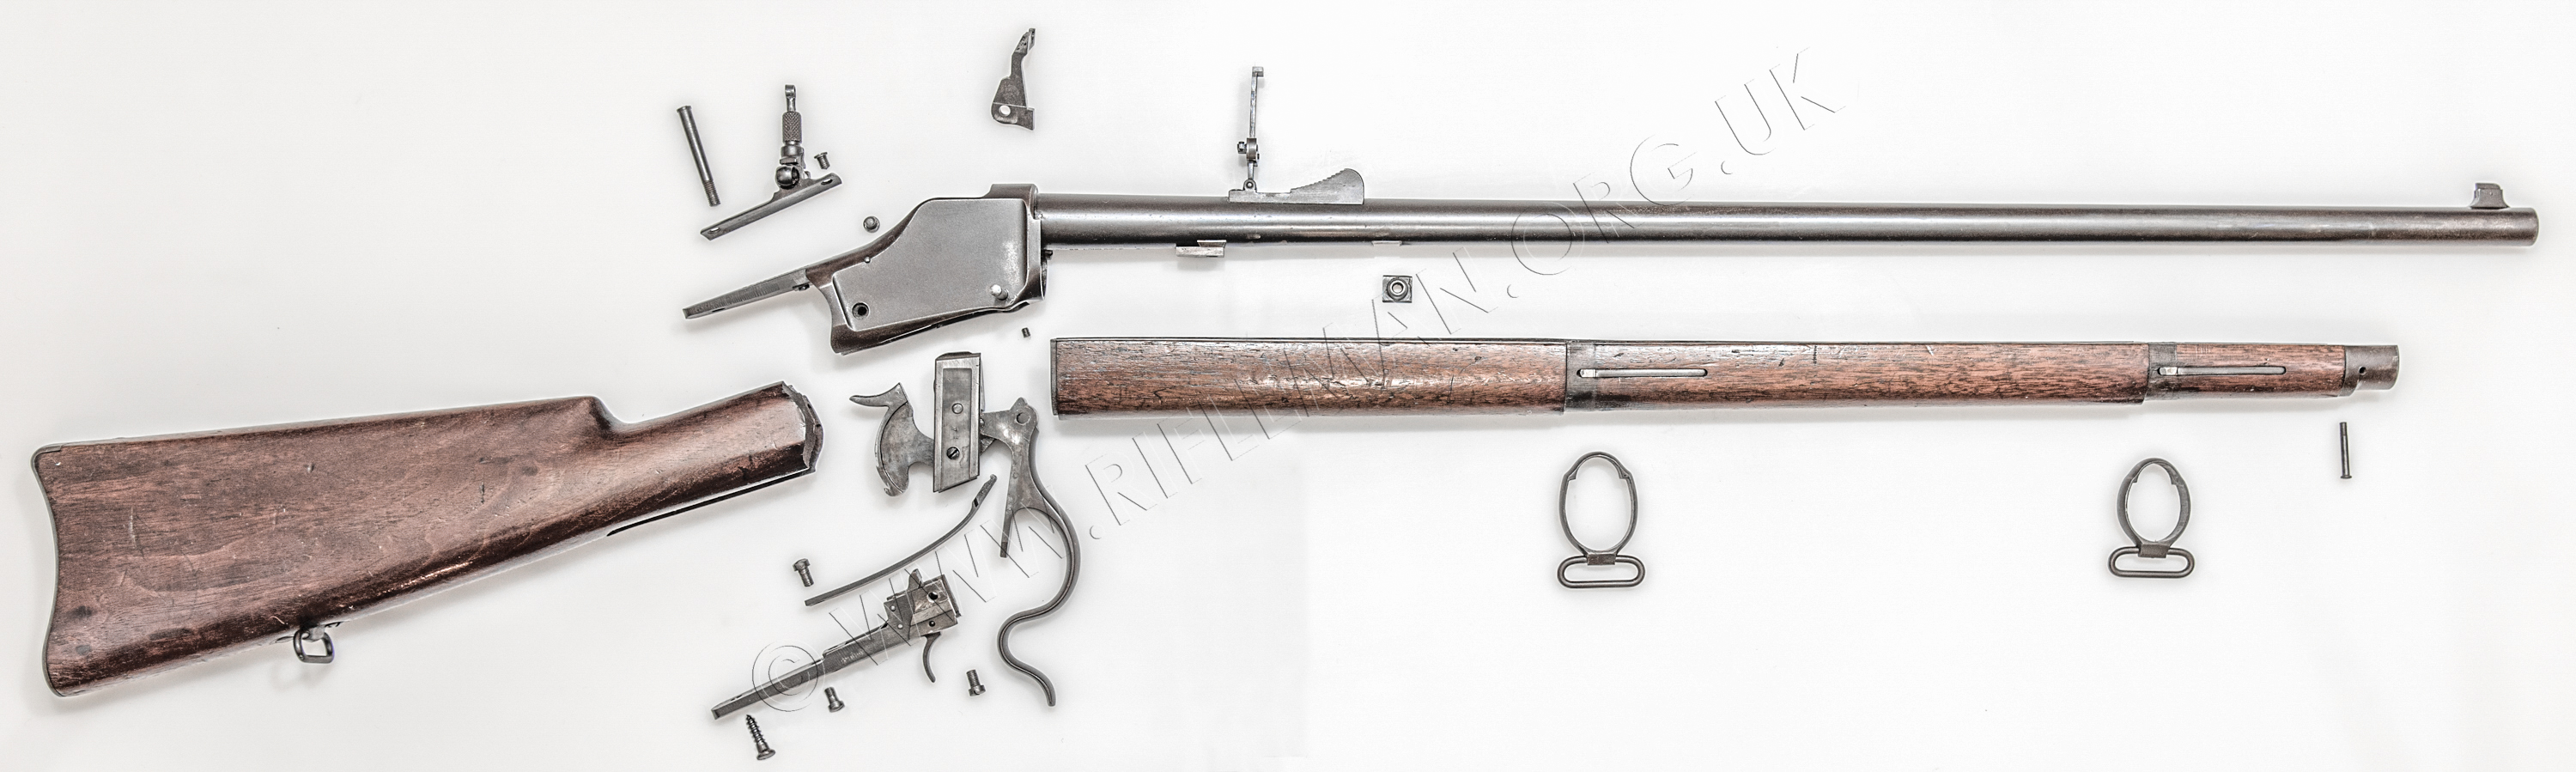 Winchester Winder Musket and Semi-Auto rifles